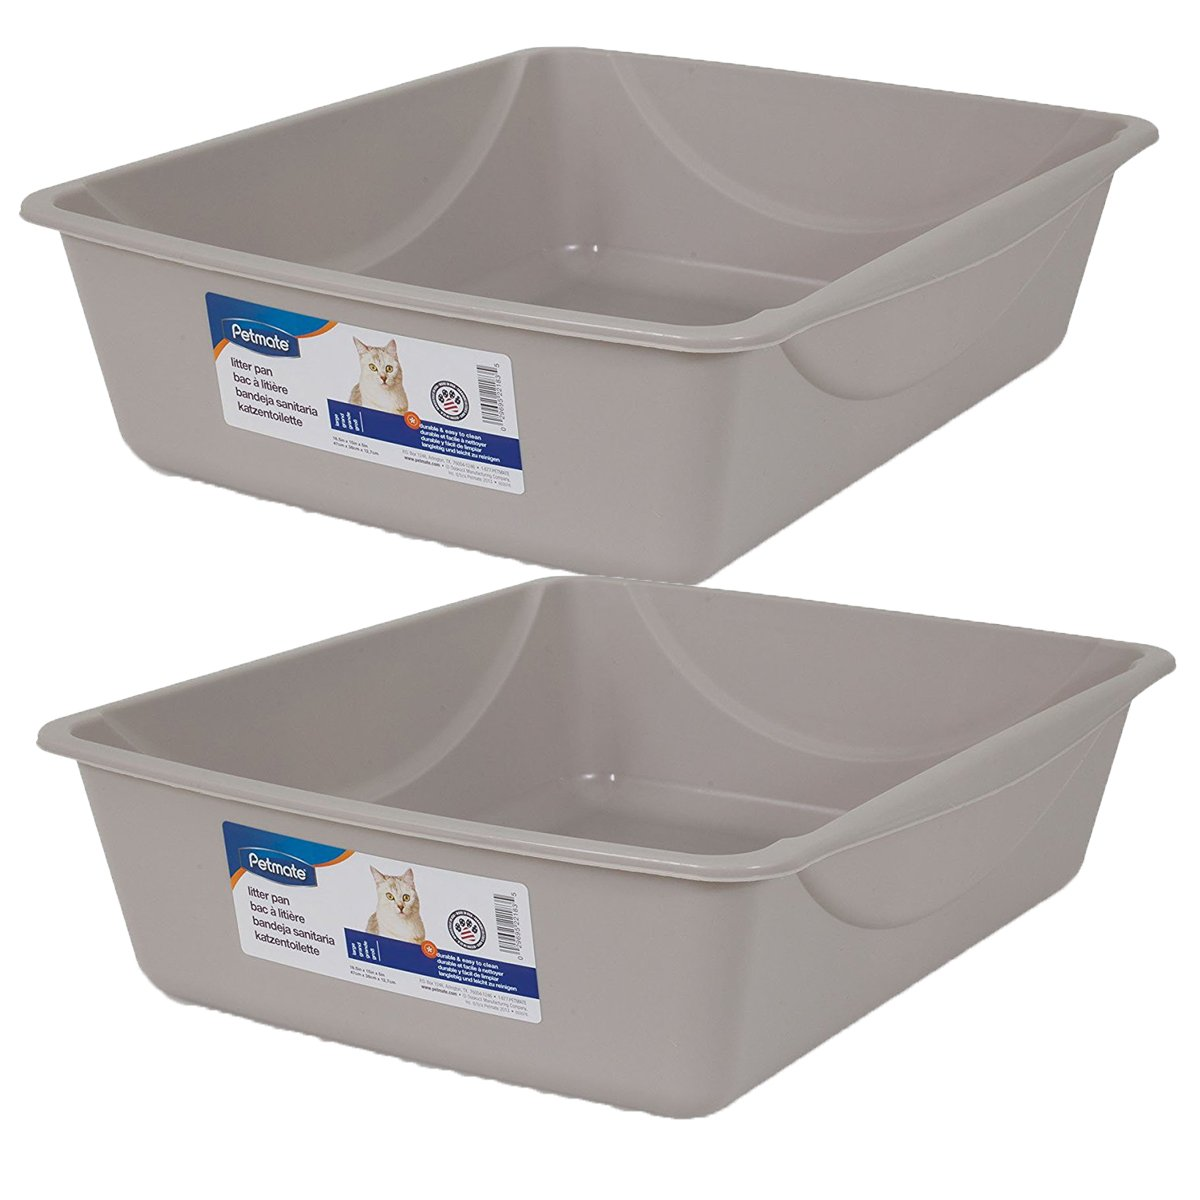 Petmate Litter Pan, Blue Mesa/ Mouse Grey, Large, 2 Pack by Doskocil